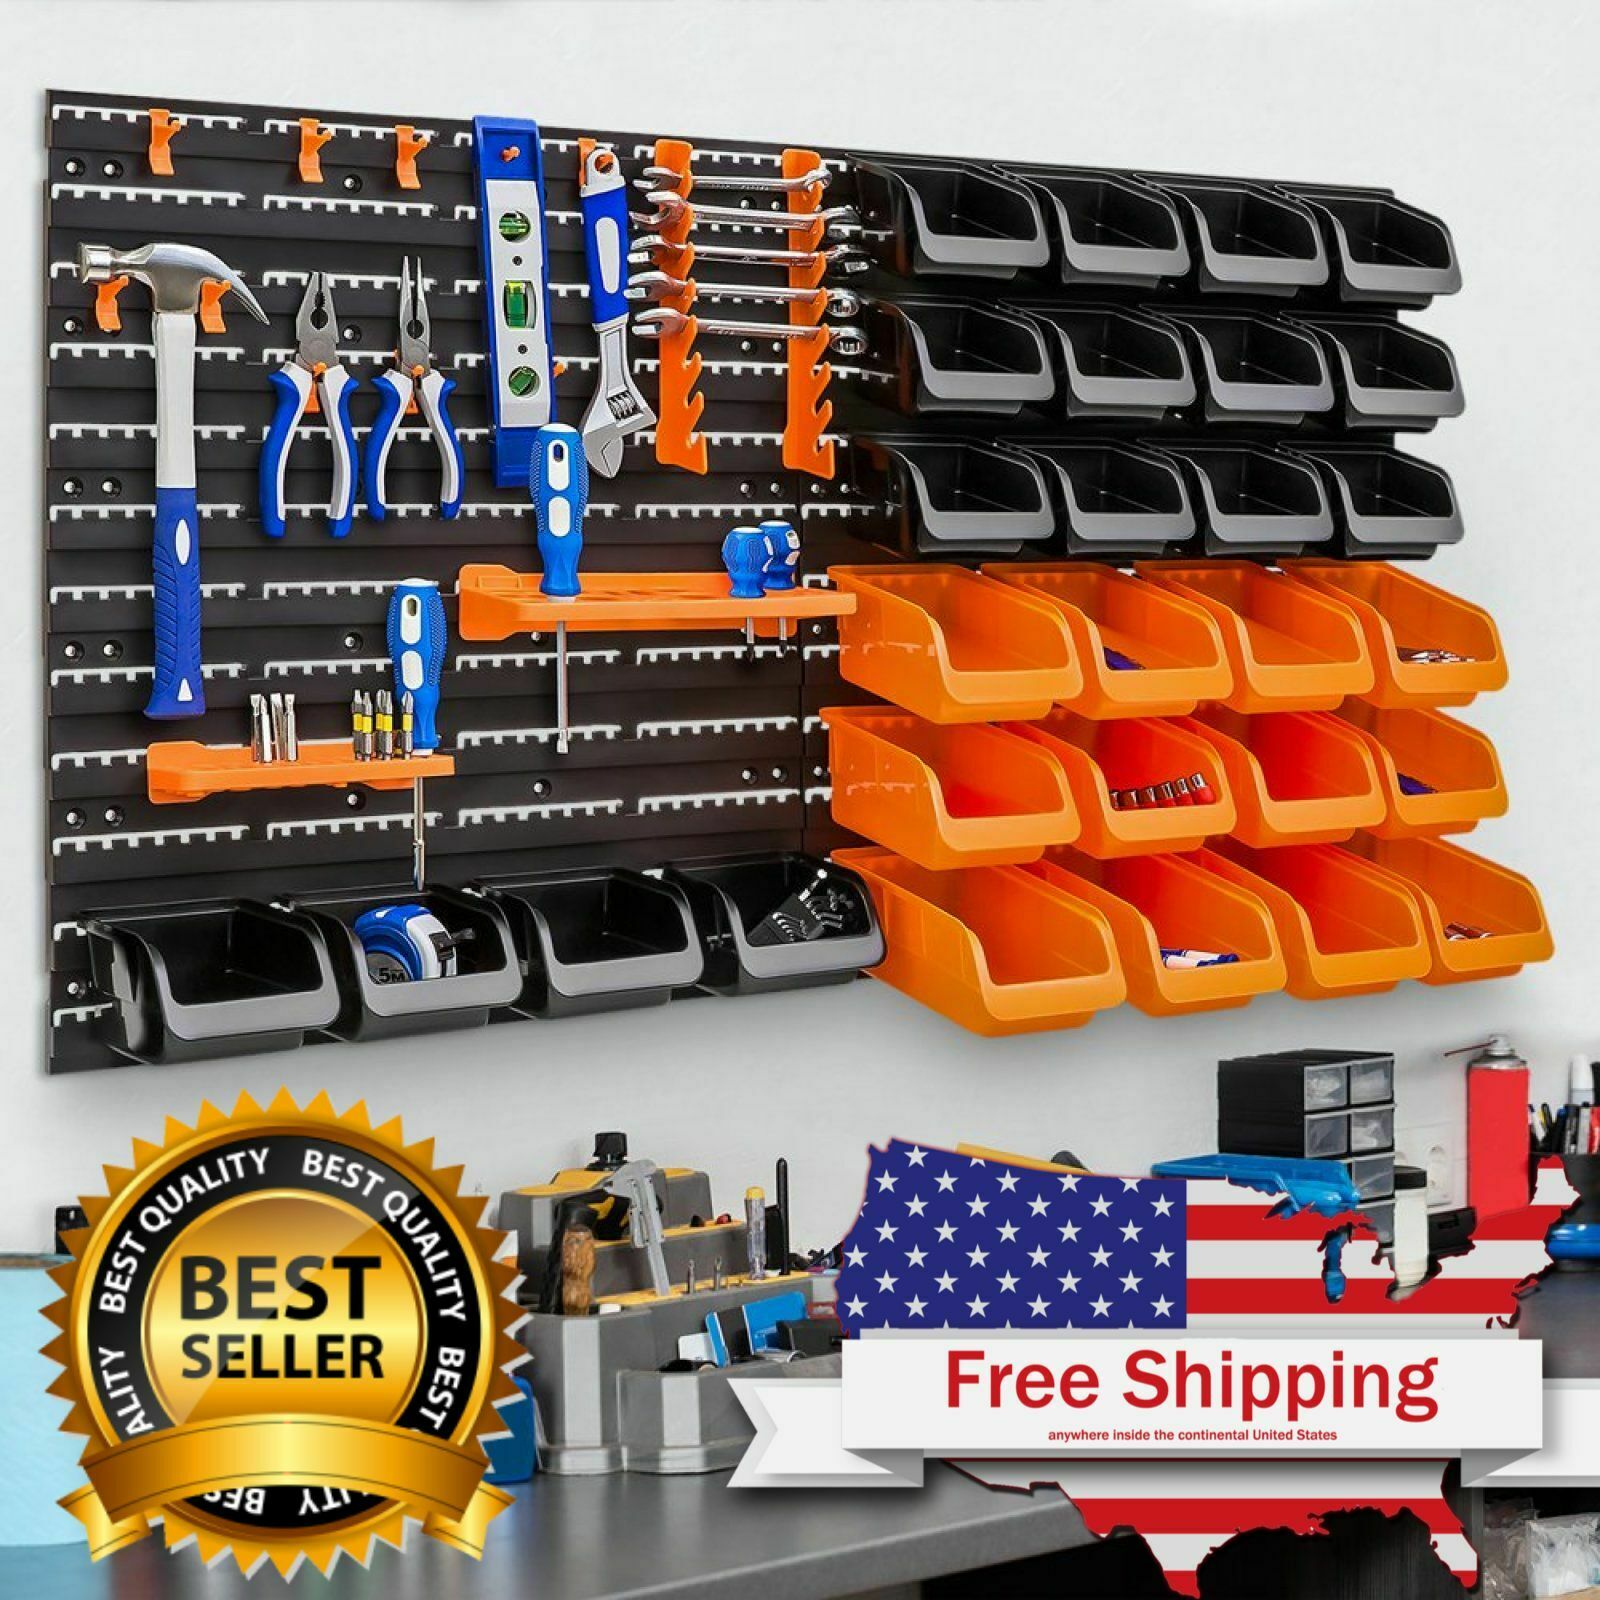 Garage Storage Organizer Rack 44-Piece Wall Mounted, Best Ch